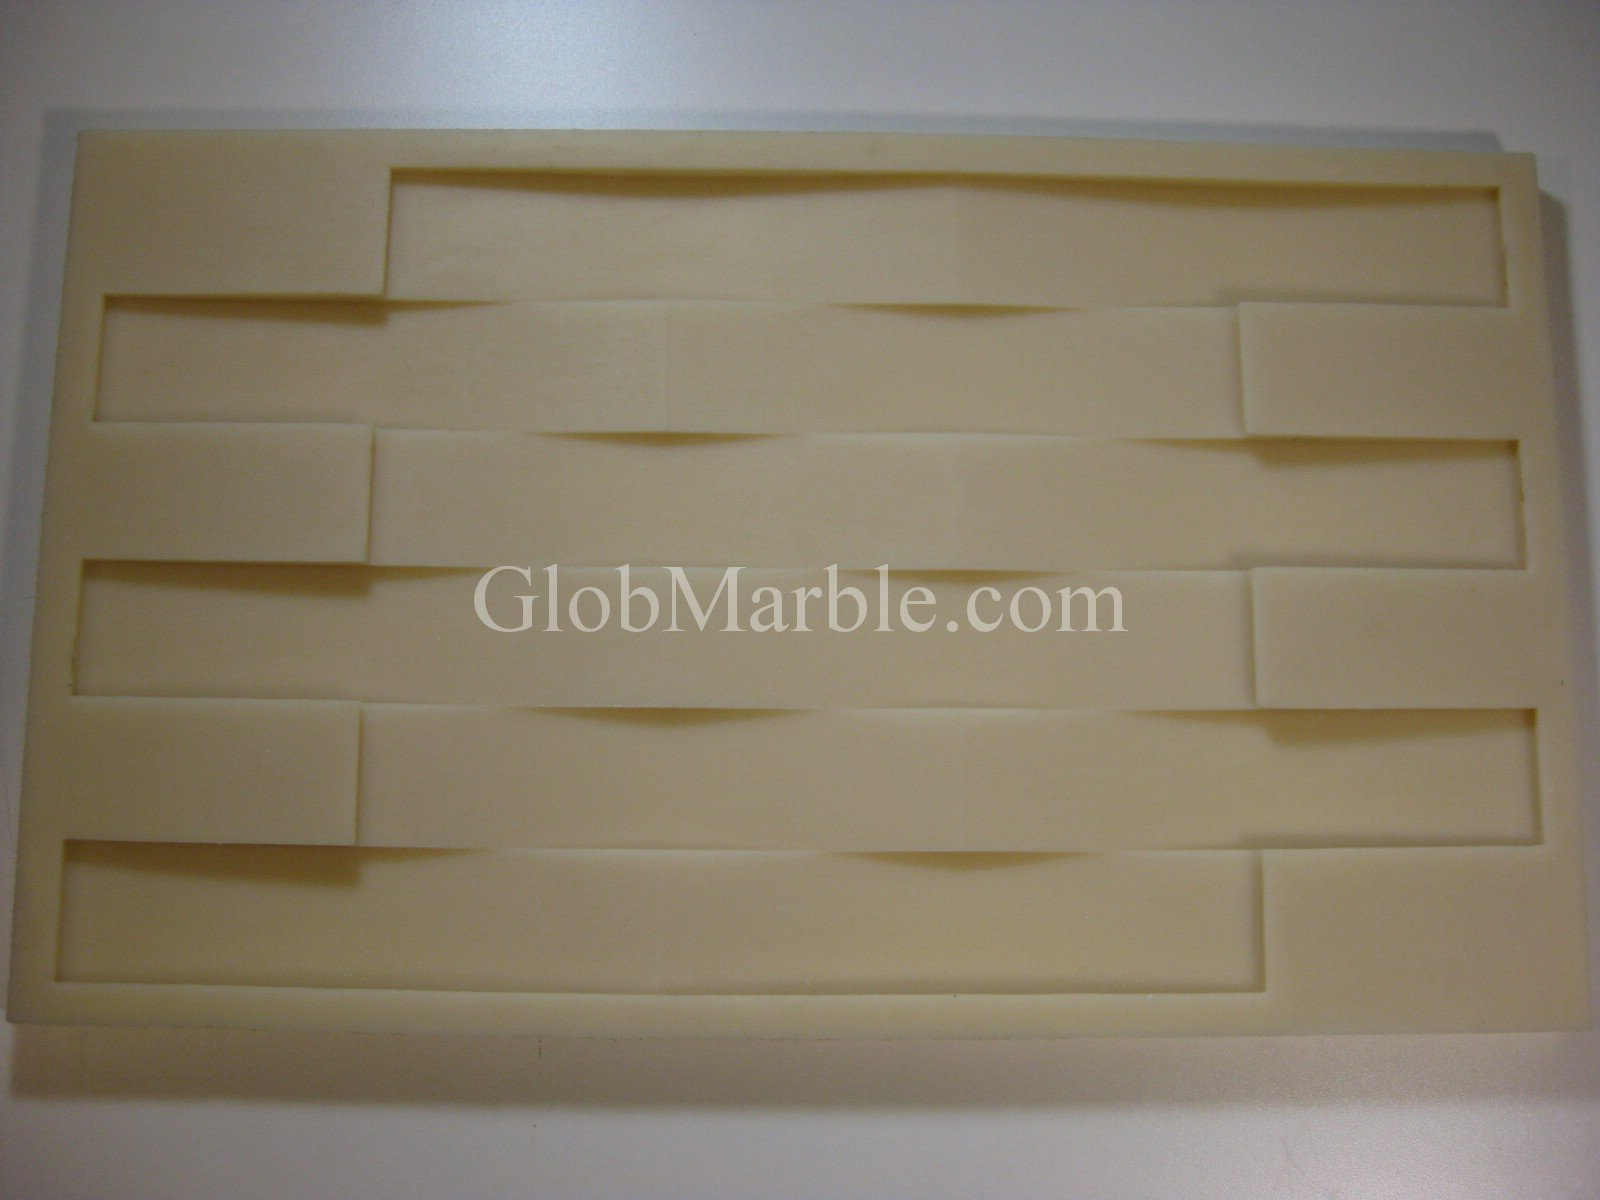 Veneer Stone Mold VS 1011/1 by GlobMarble